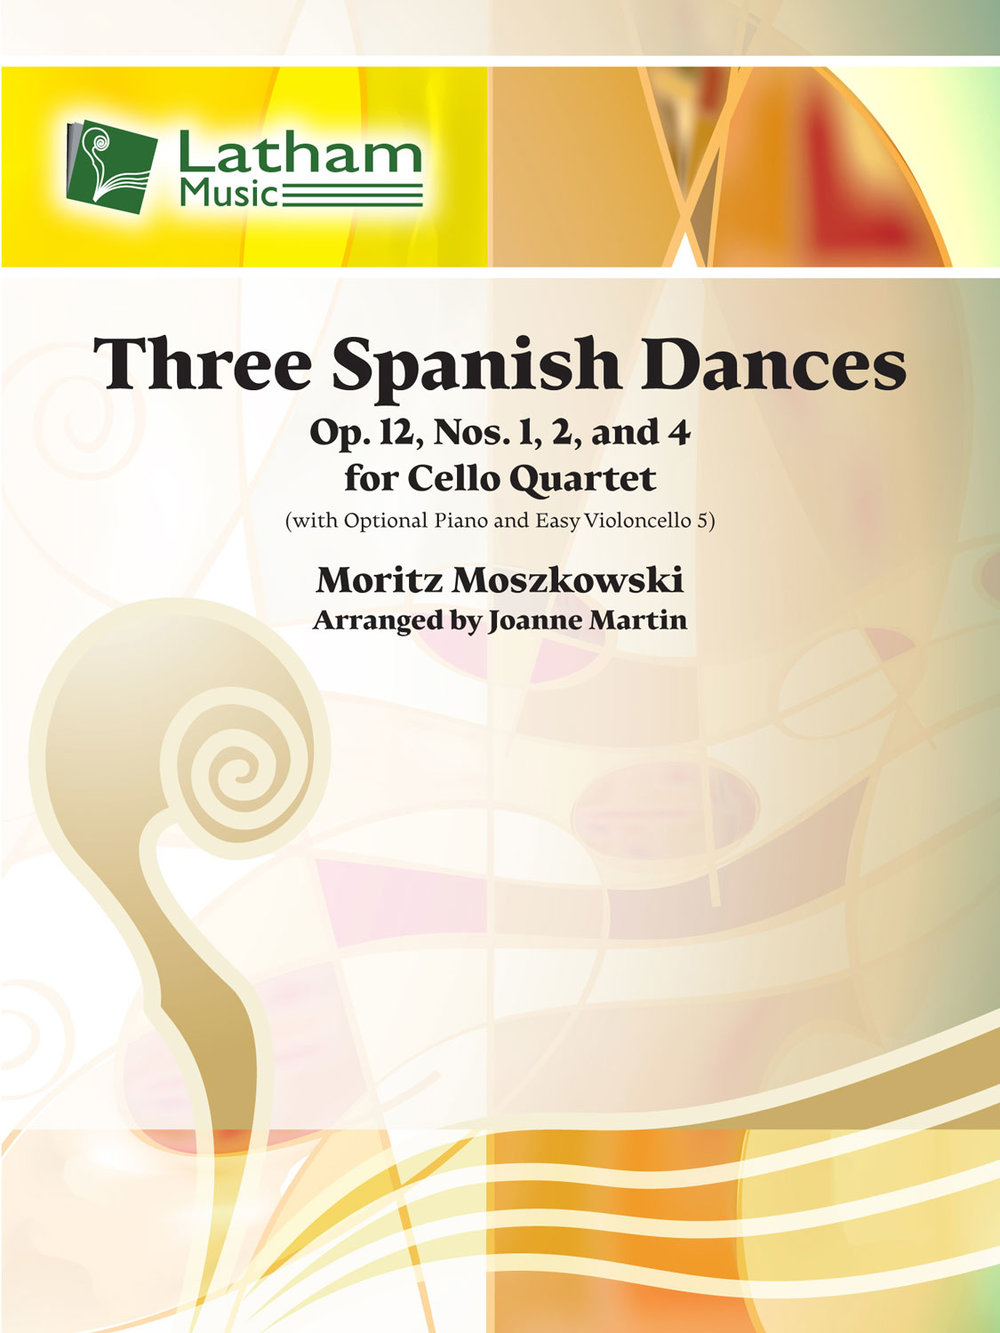 SpanishDanceCello.jpg